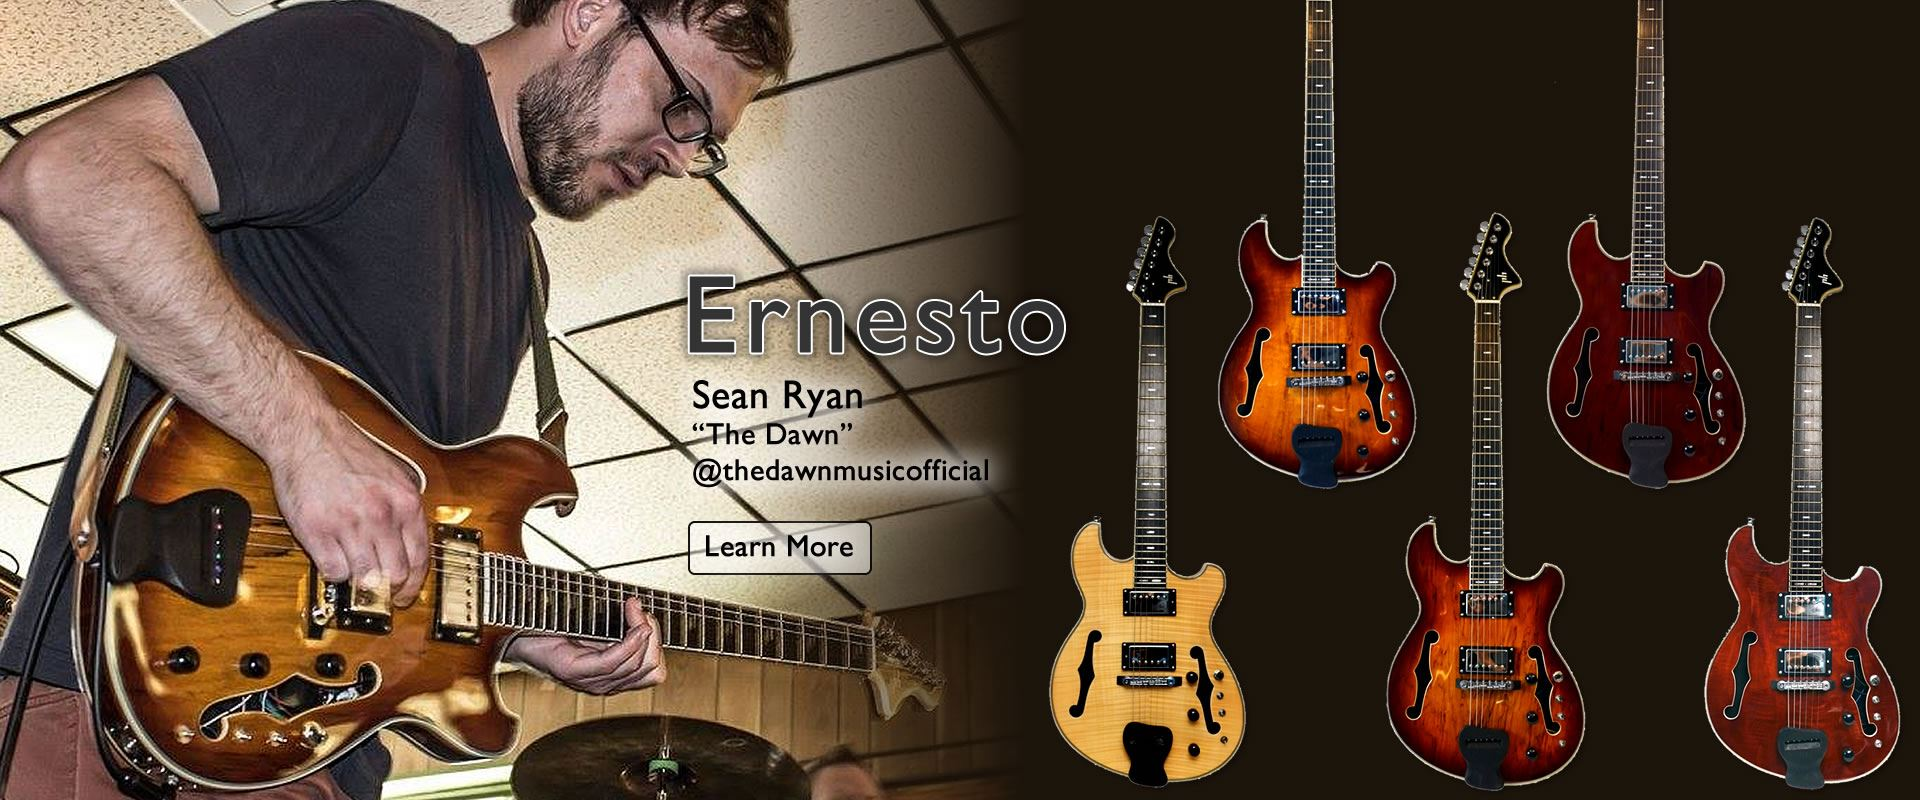 Ernesto  - Play All Your Phavorites in Style.